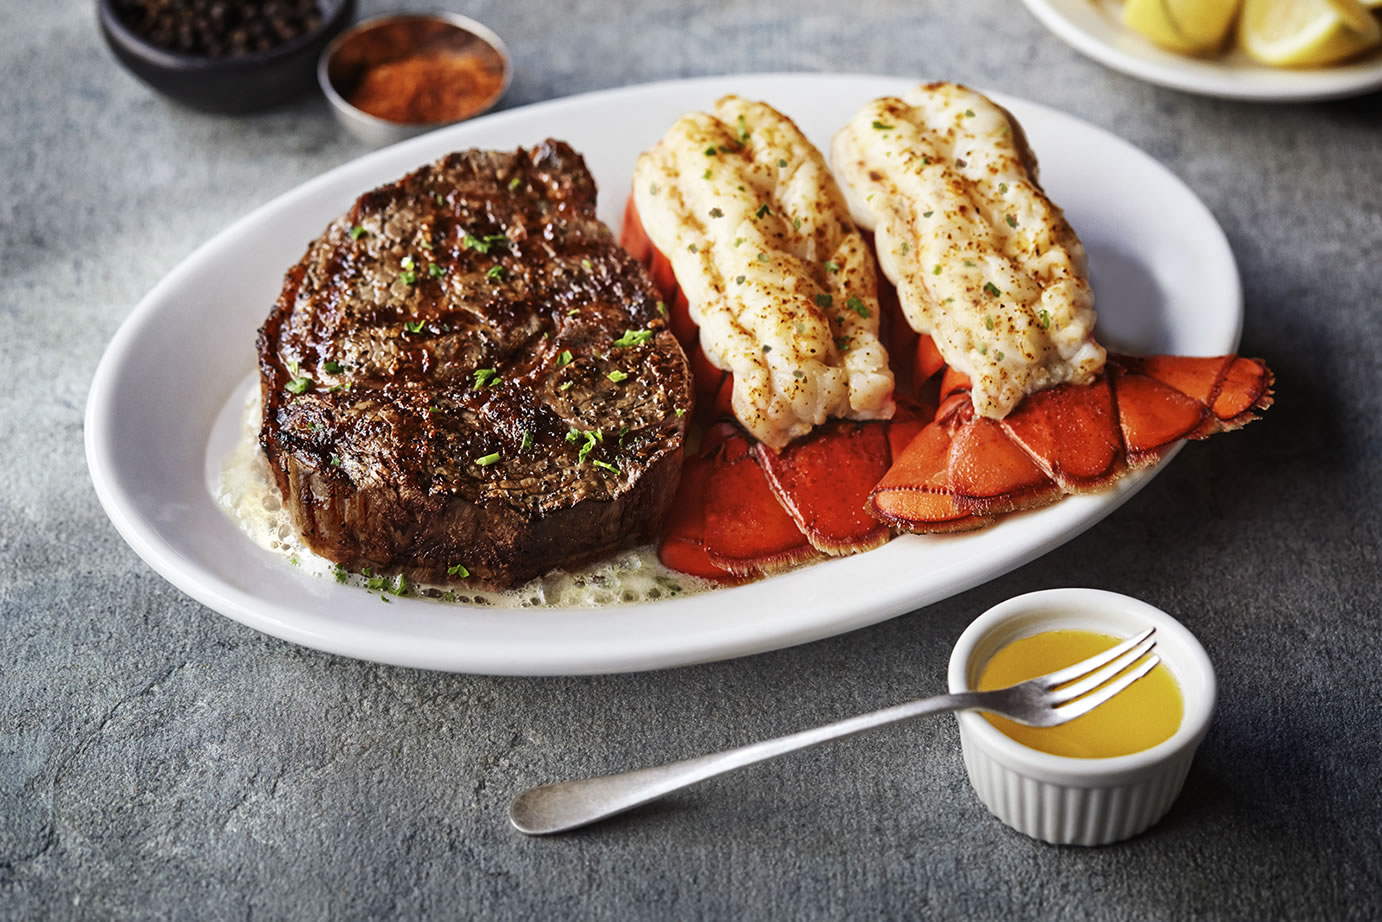 Mastro's Steakhouse prices reflect its status as among the best in the classic steakhouse and fish house industry – truly, a collection of sophisticated restaurants known as much for its sumptuous array of food and drinks as for its celebrity clientele.